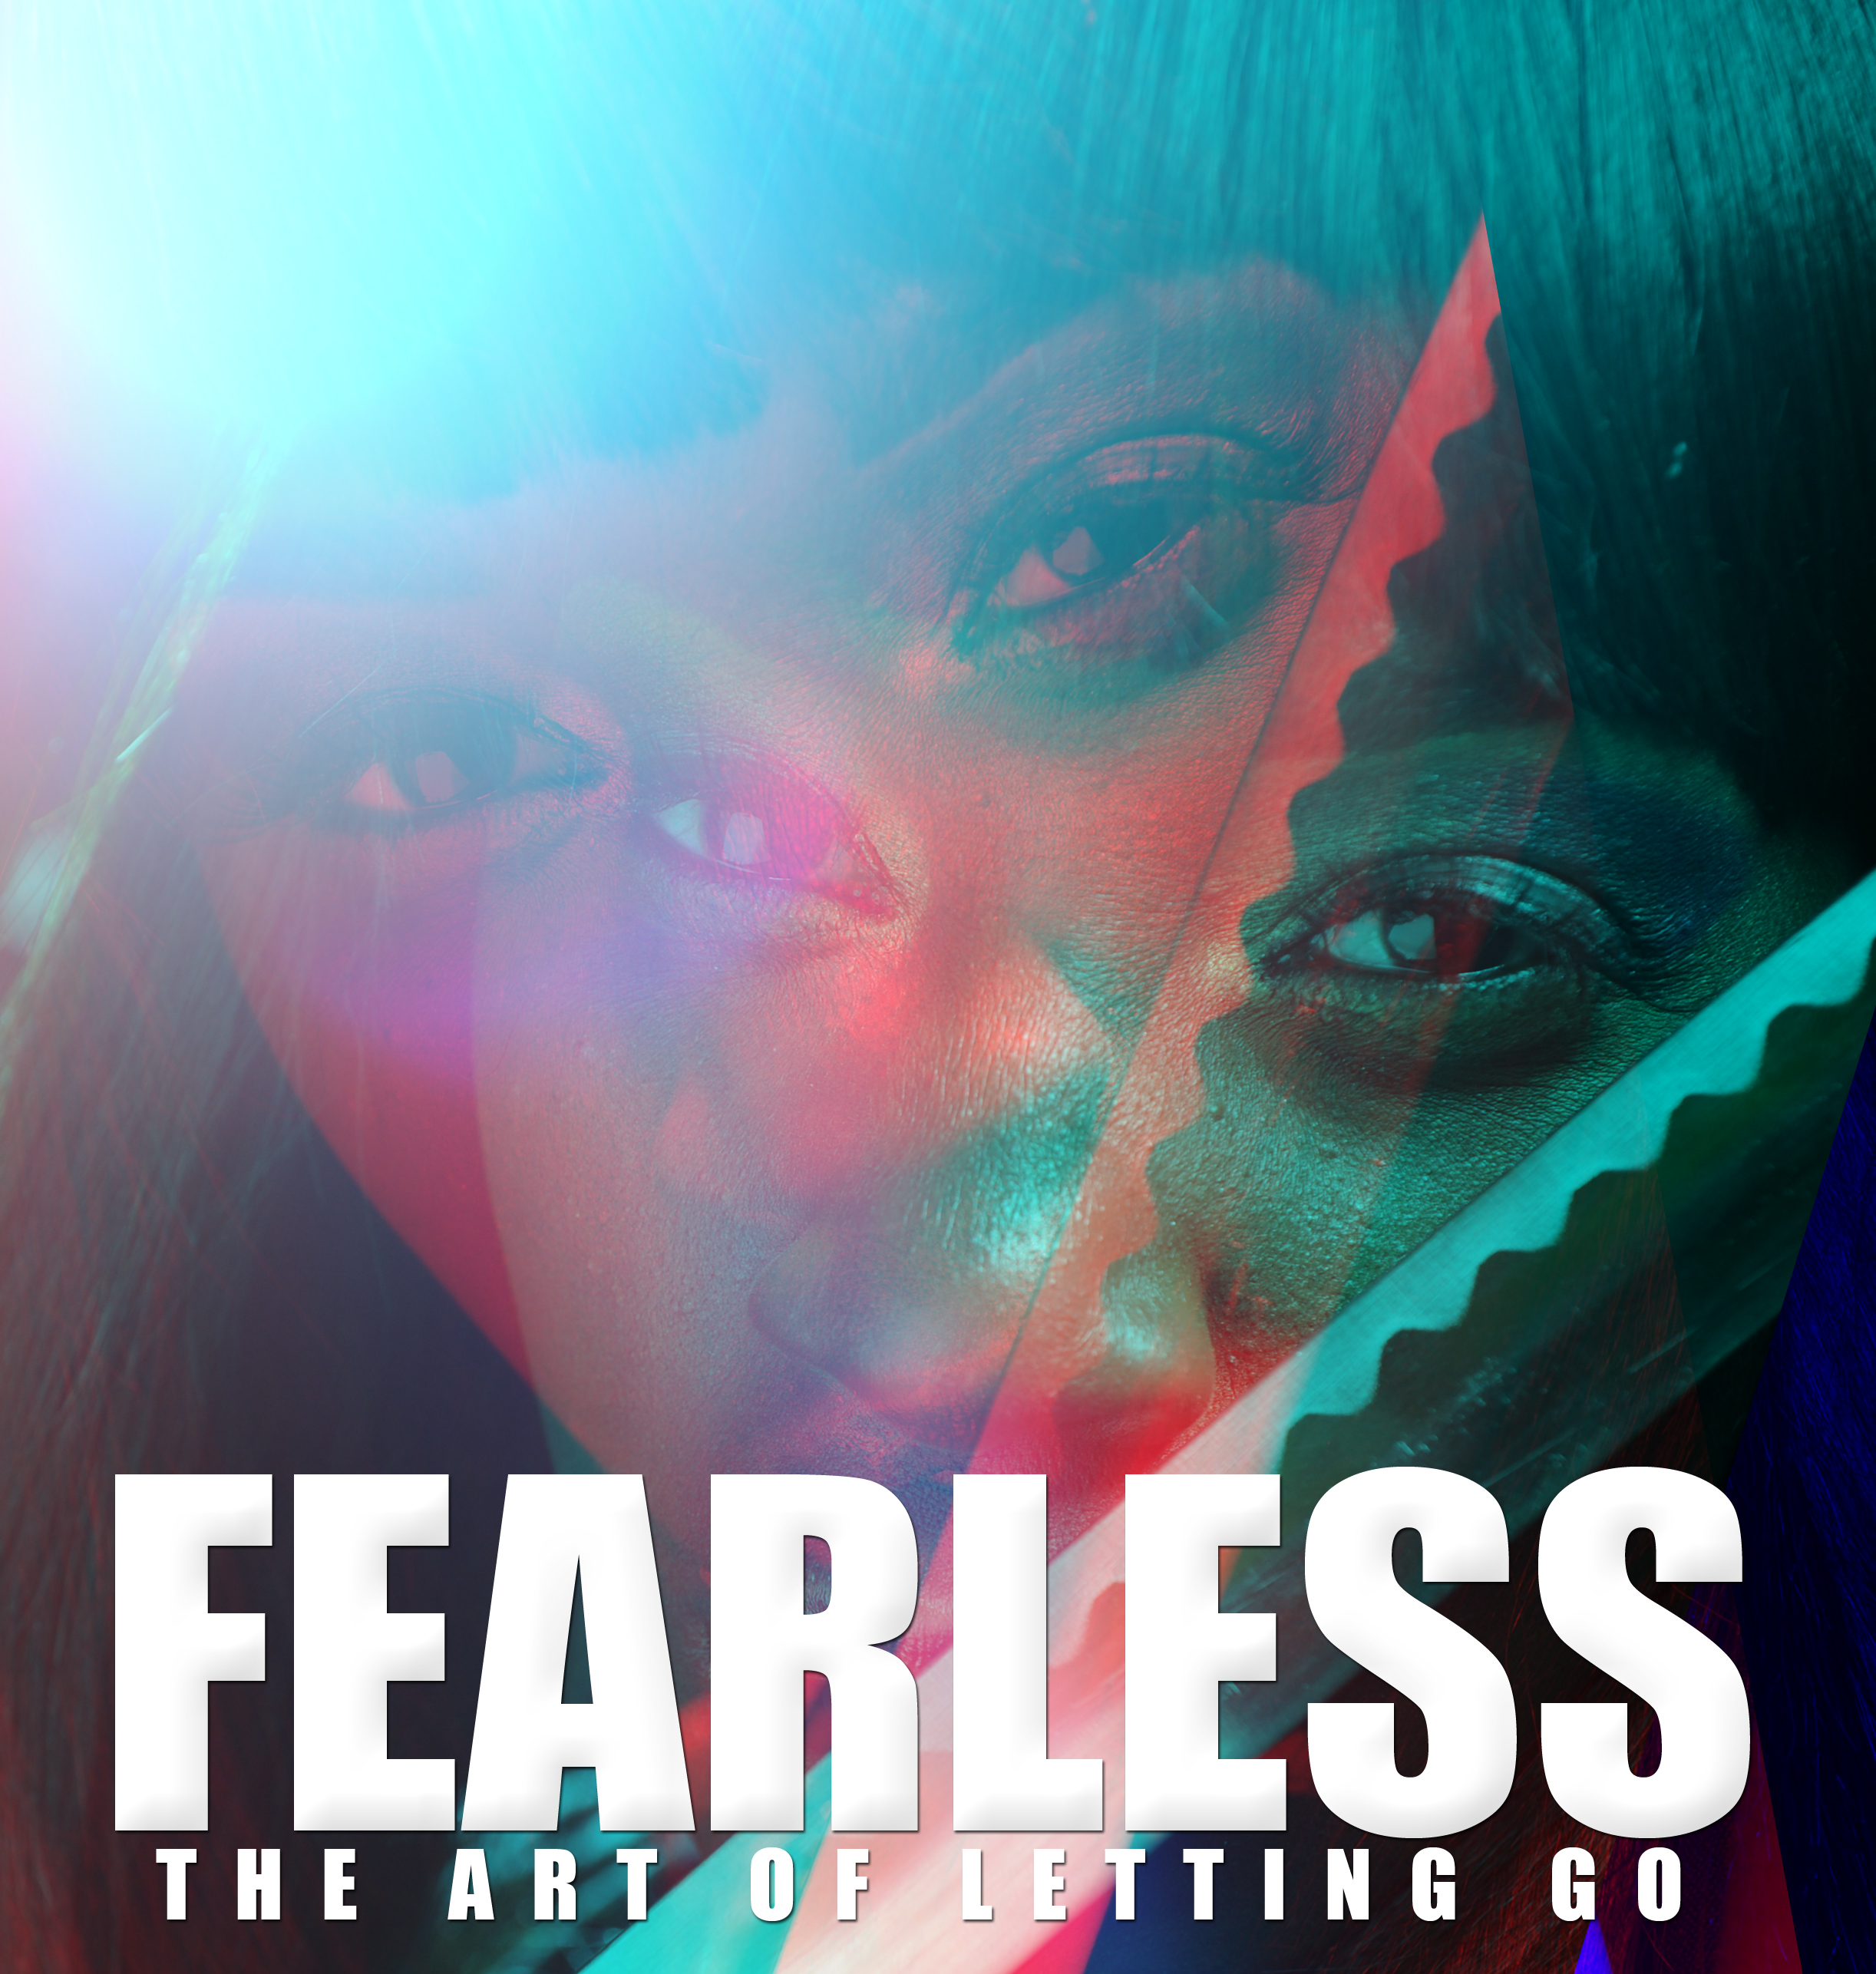 Naira – Fearless: The art of letting go